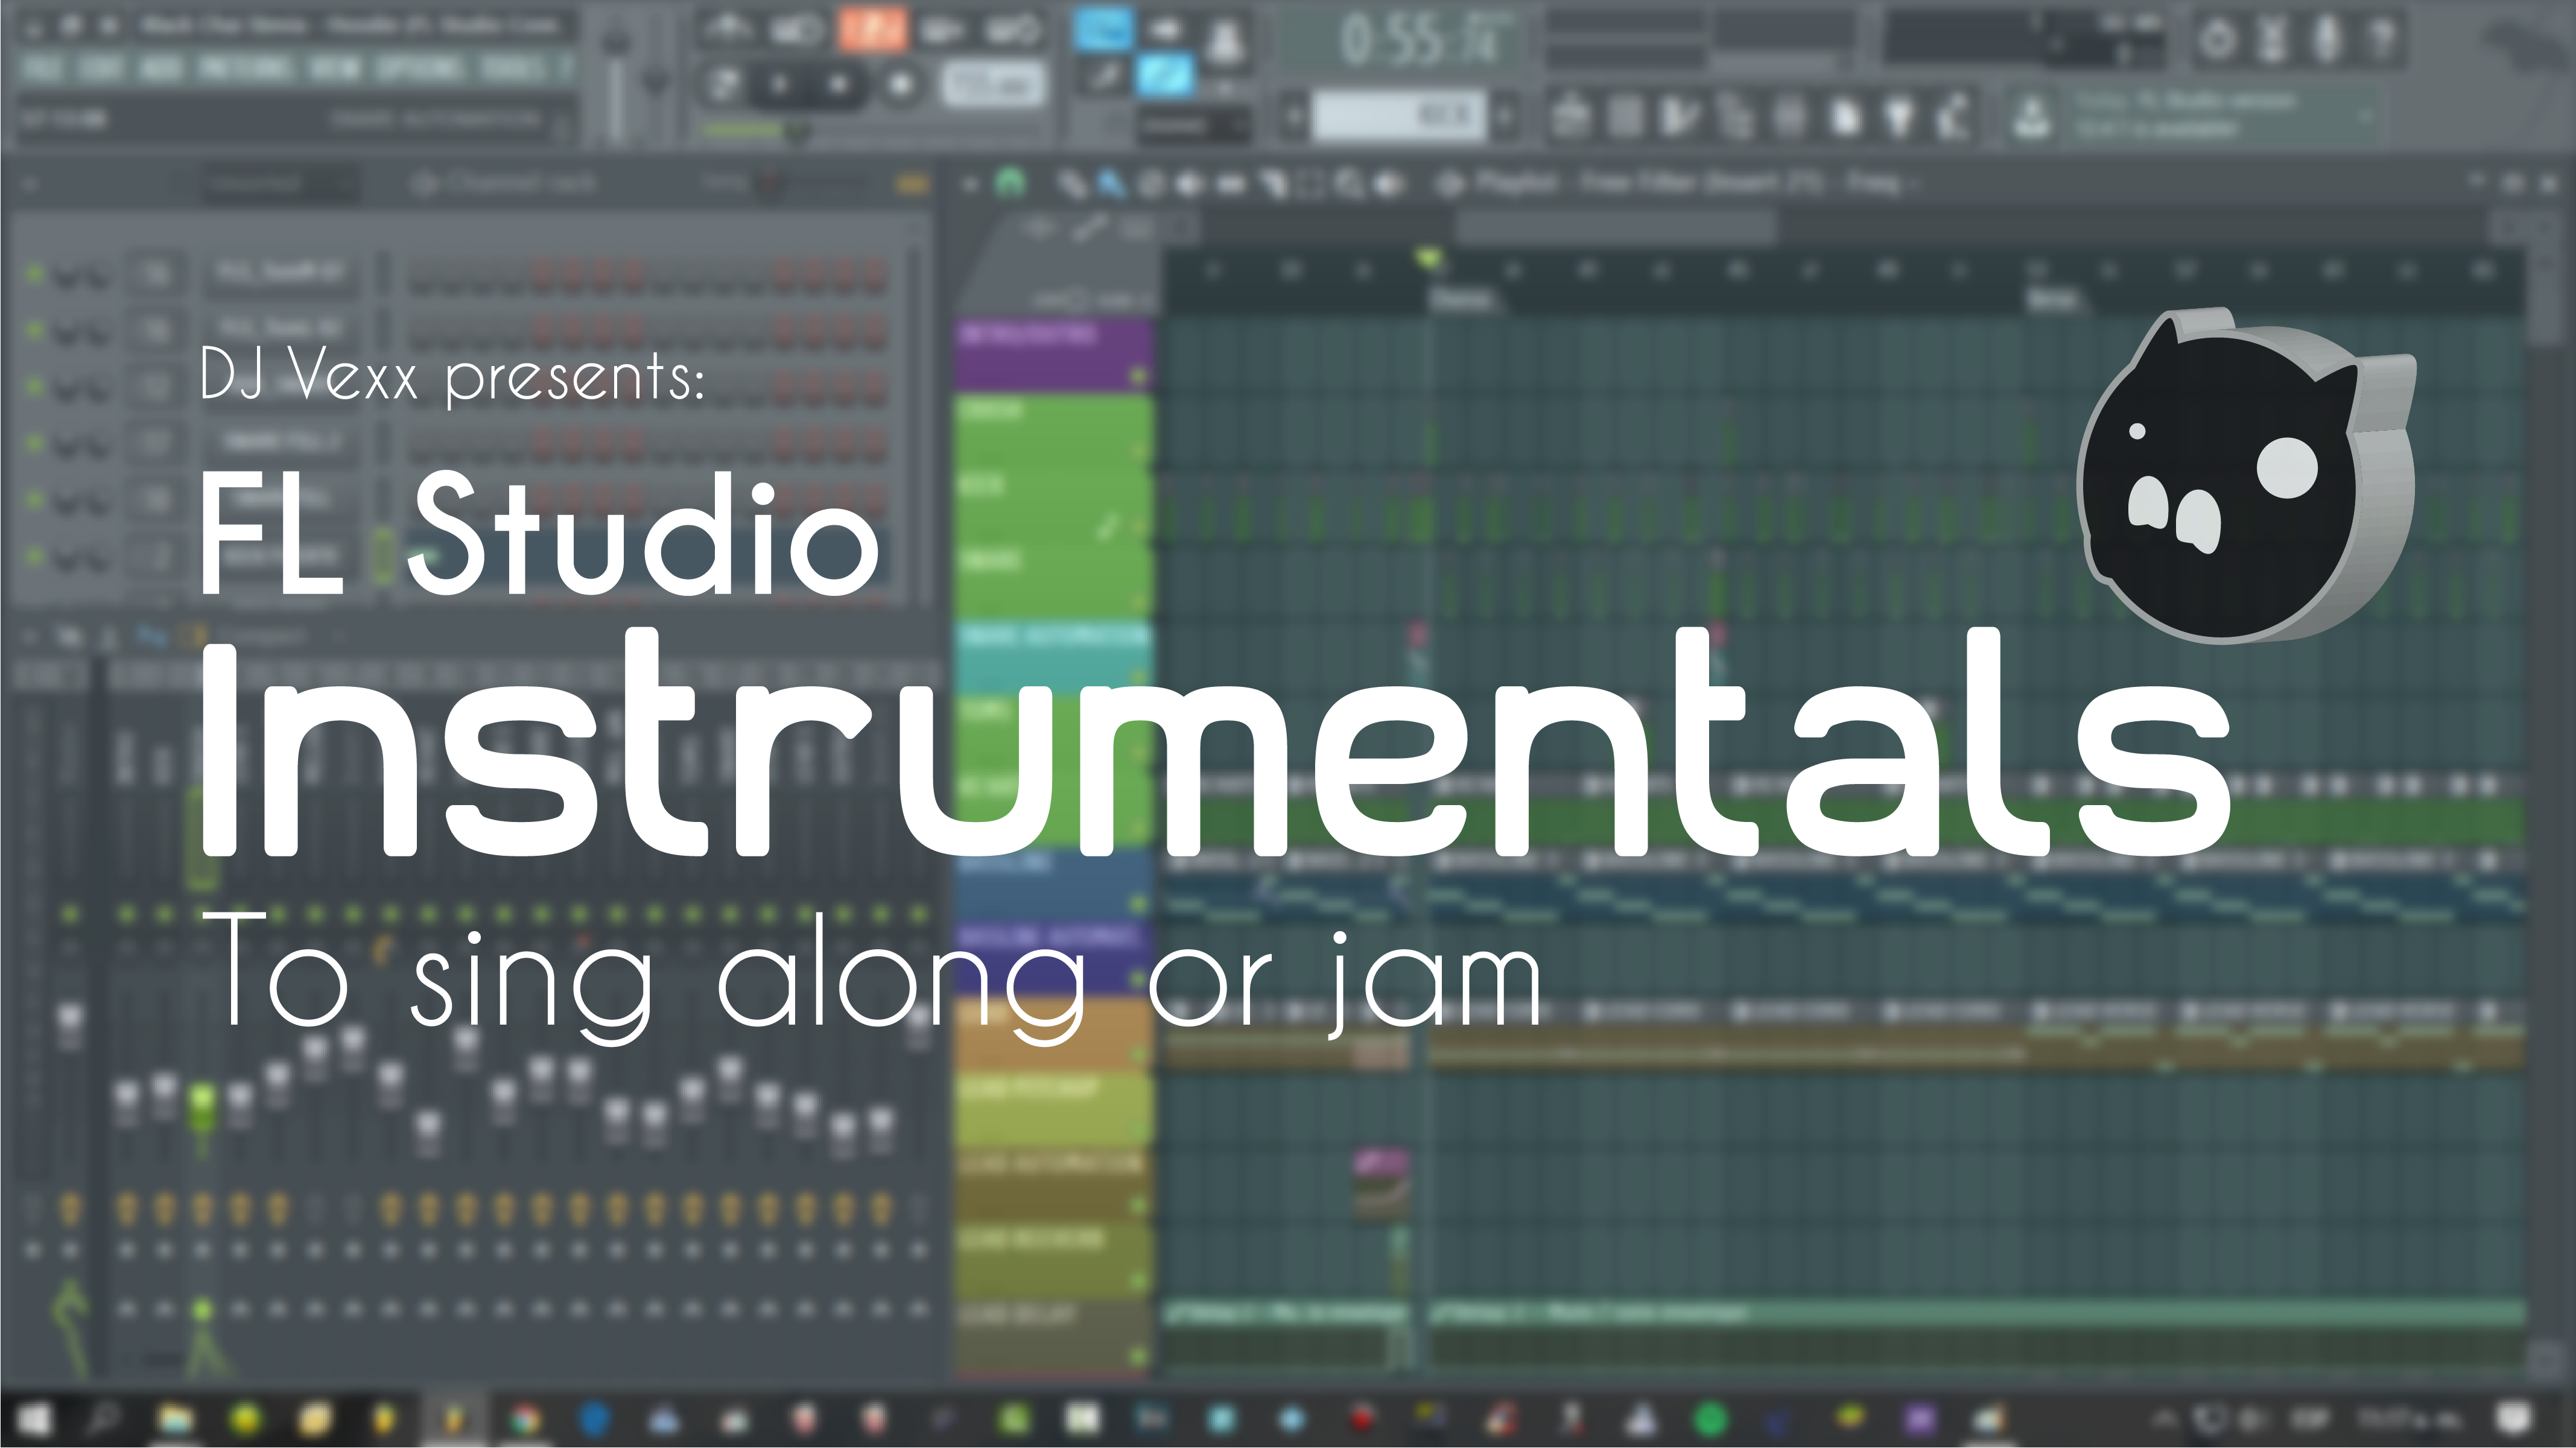 instrumental remake a song on FL Studio